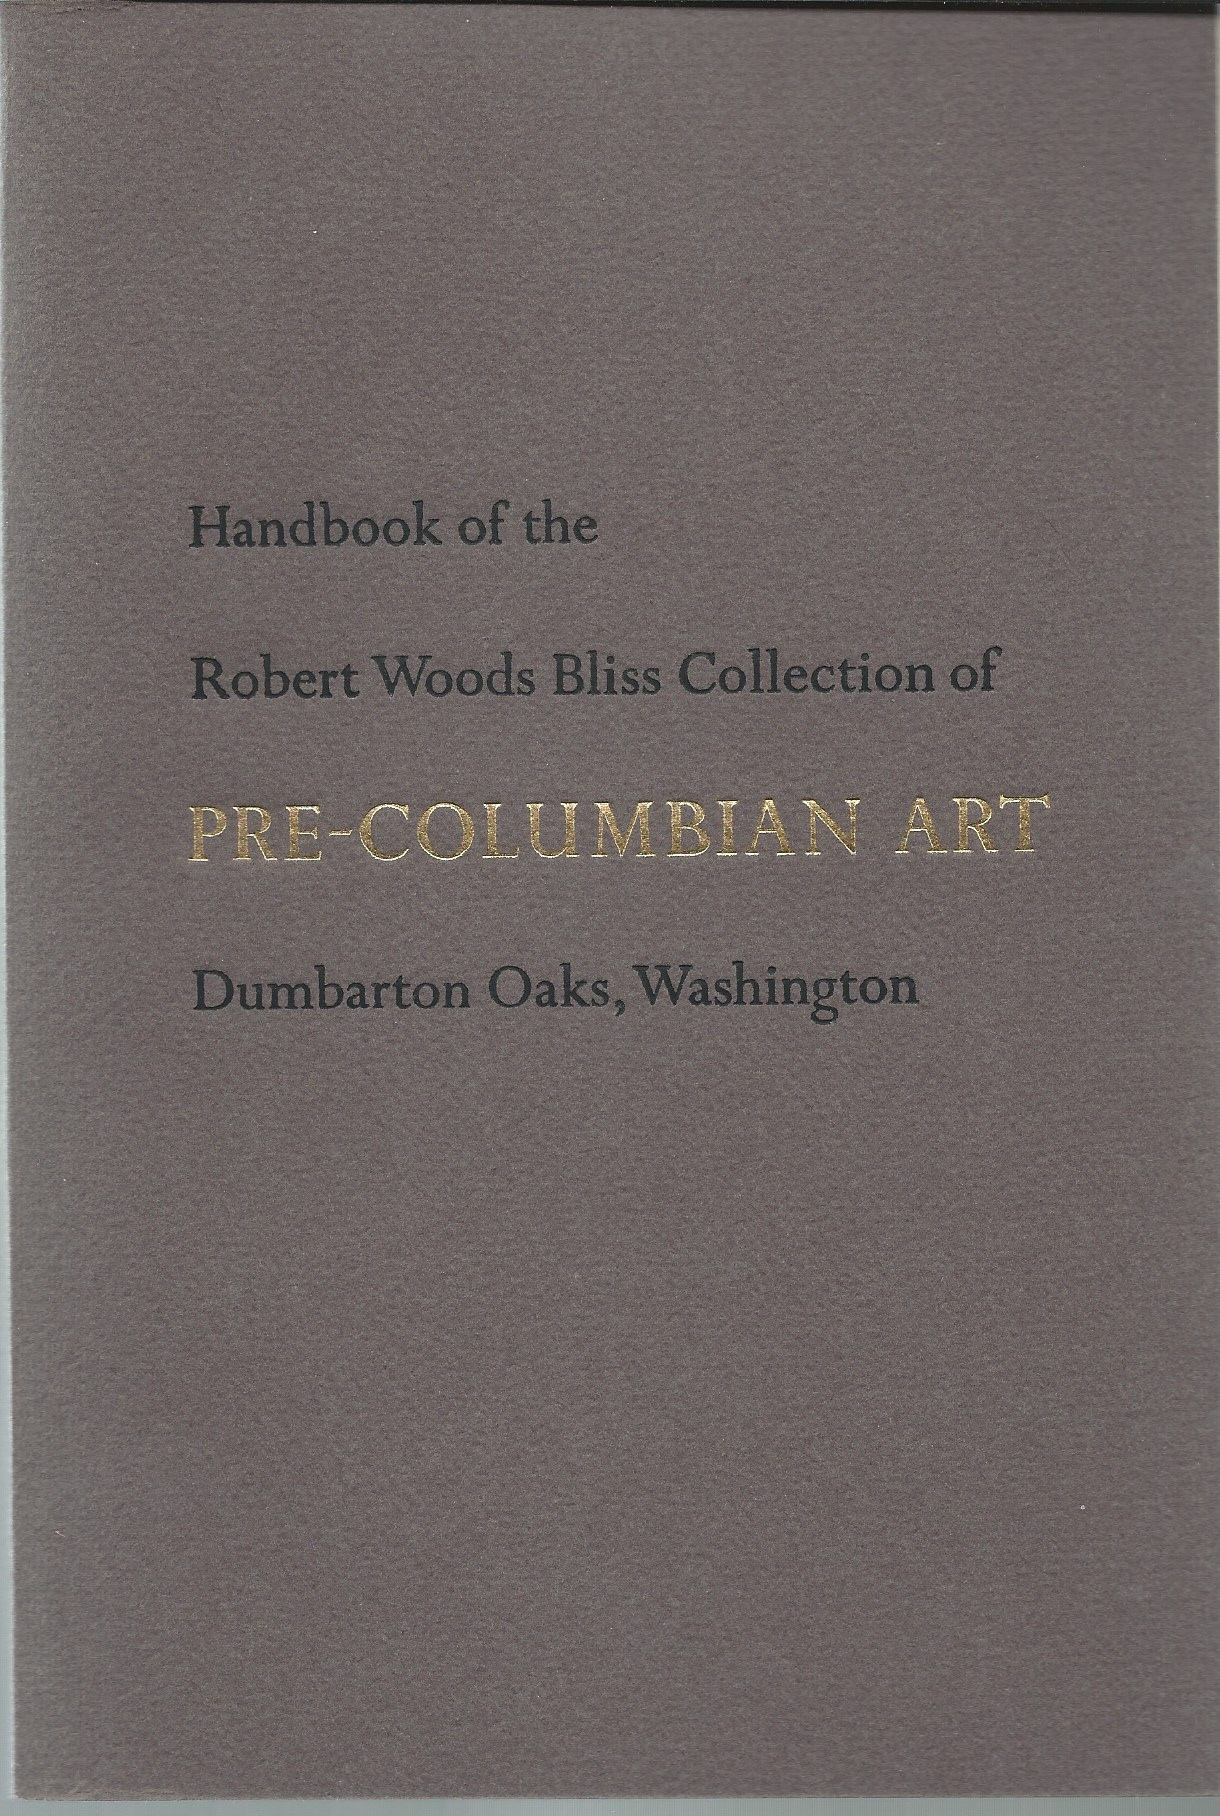 Image for HANDBOOK OF THE ROBERT WOODS BLISS COLLECTION OF PRE-COLUMBIAN ART